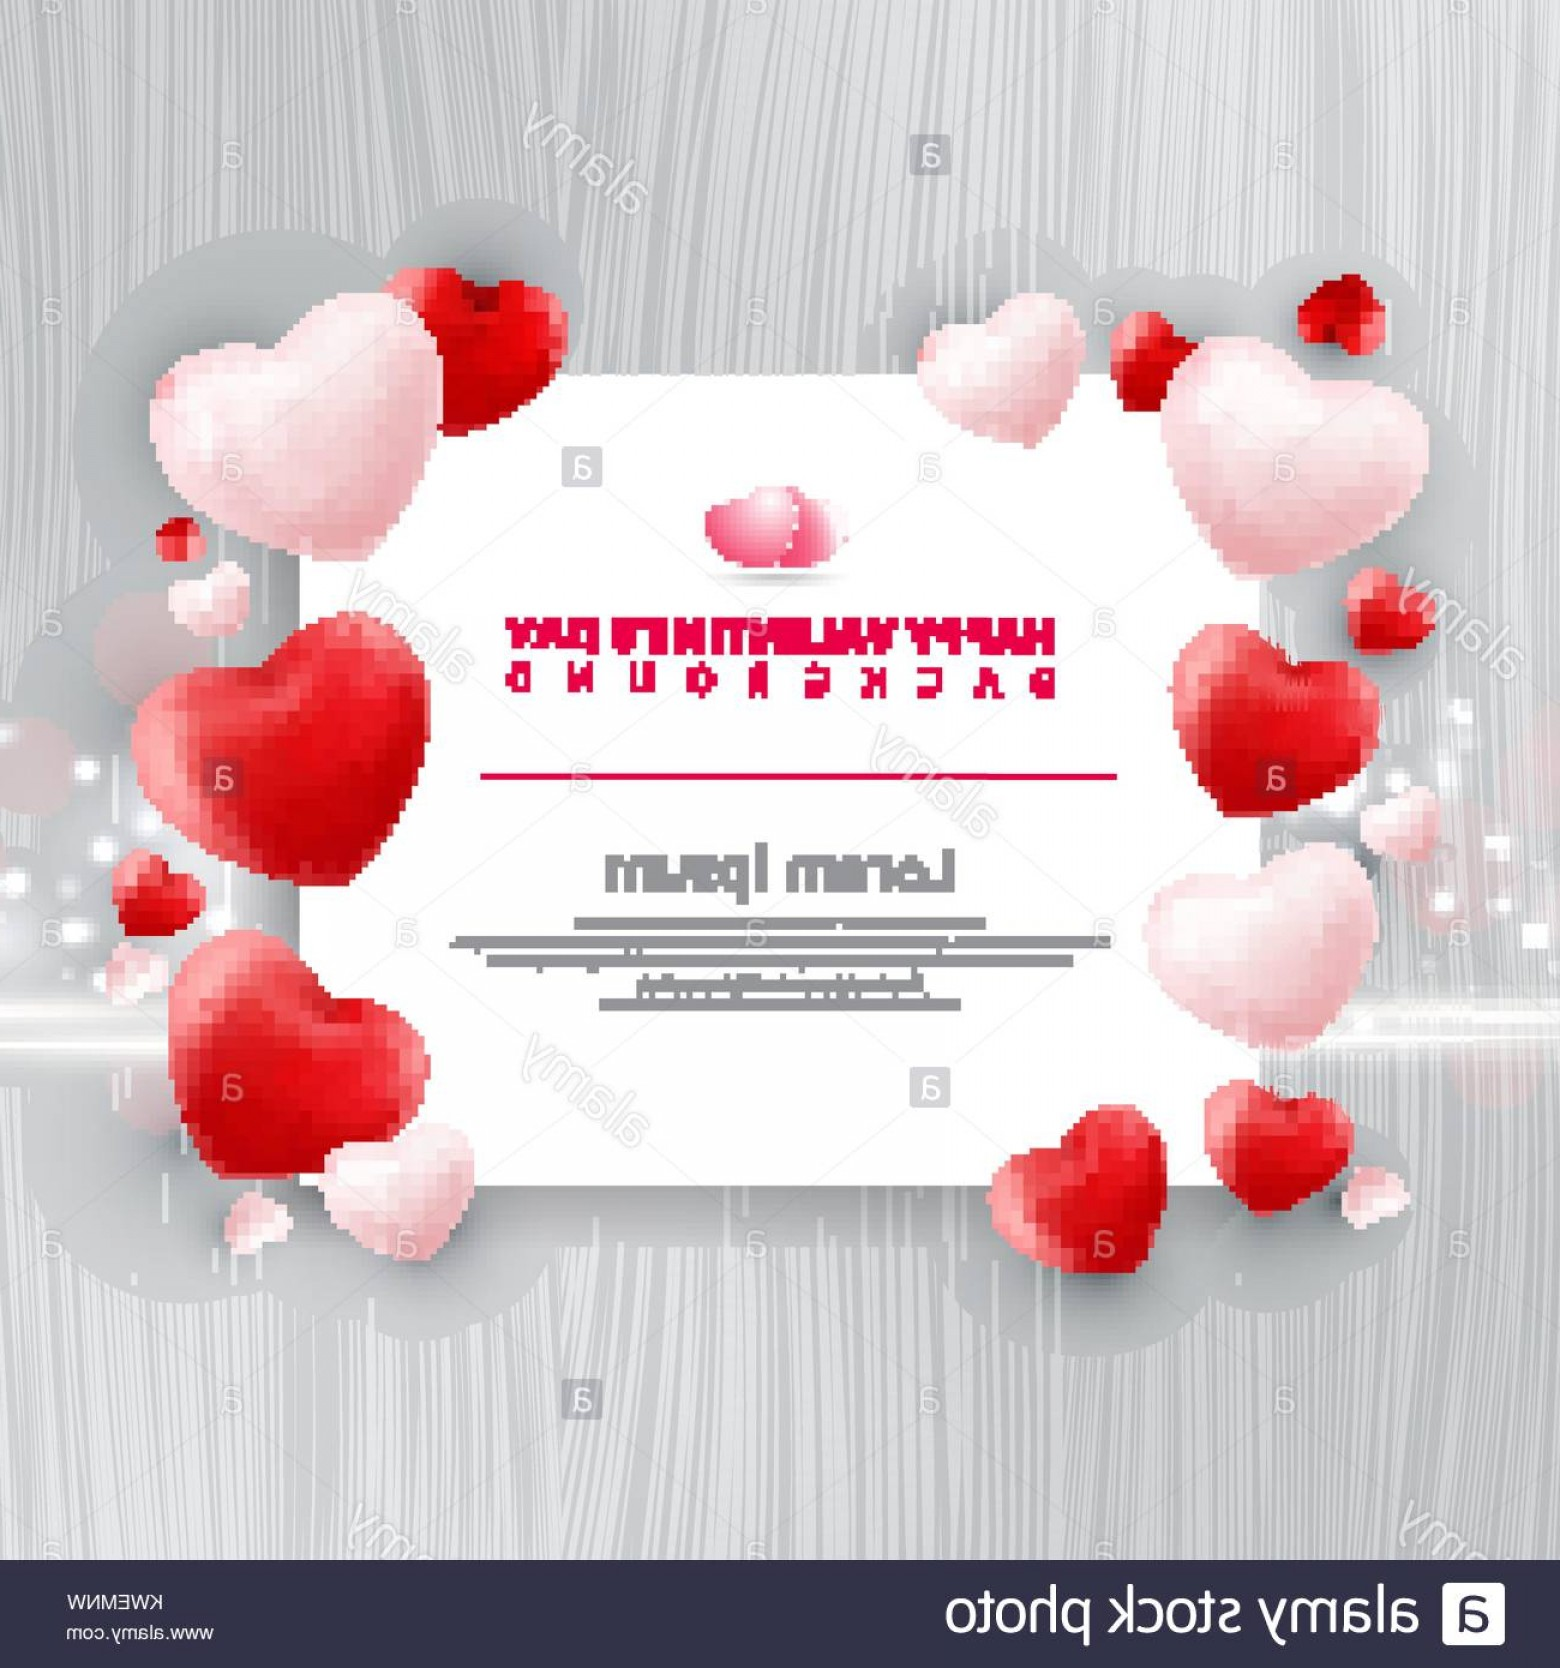 Balloons Vector Wallpaper: Stock Photo Valentines Day Sale Background With Balloons Heart Pattern On Wooden